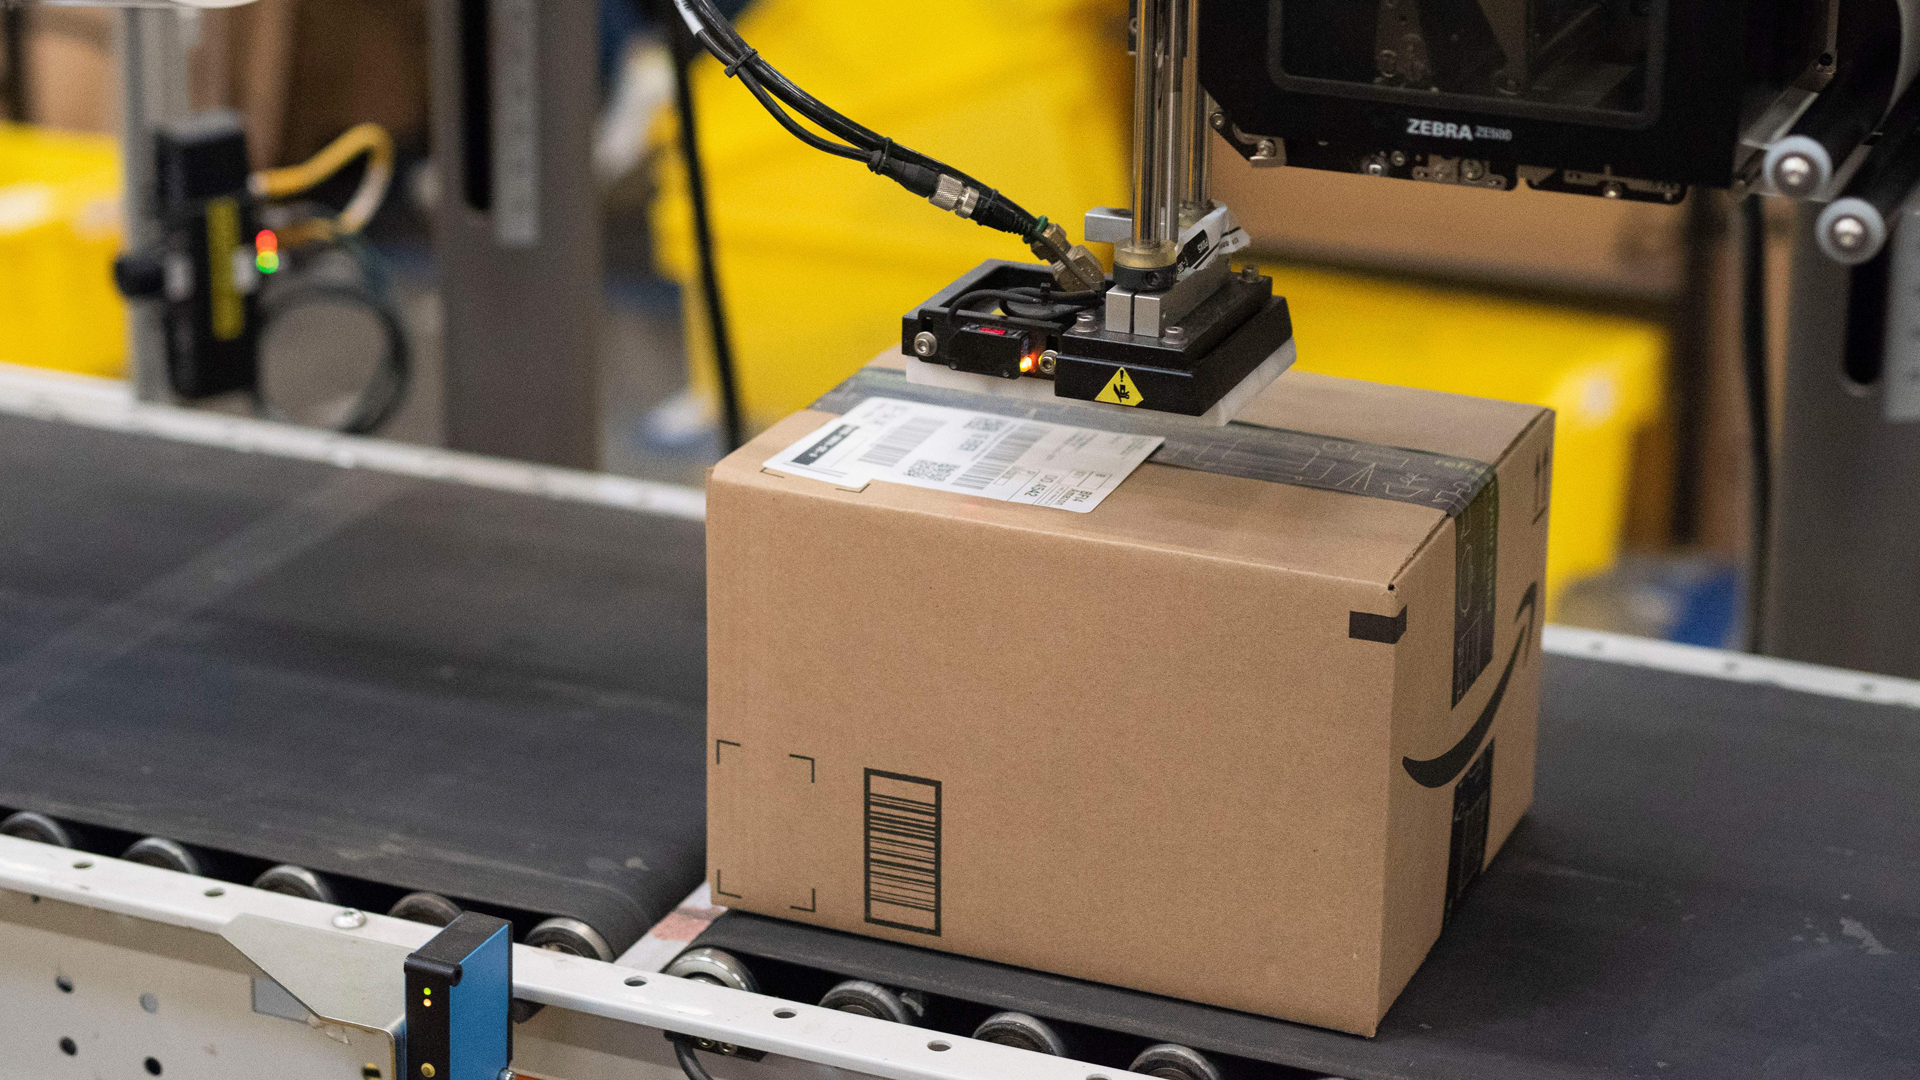 A package is labeled at Amazon's Fulfillment Center in Kent, Washington, on, September 21, 2018. (Credit: GRANT HINDSLEY/AFP/Getty Images)